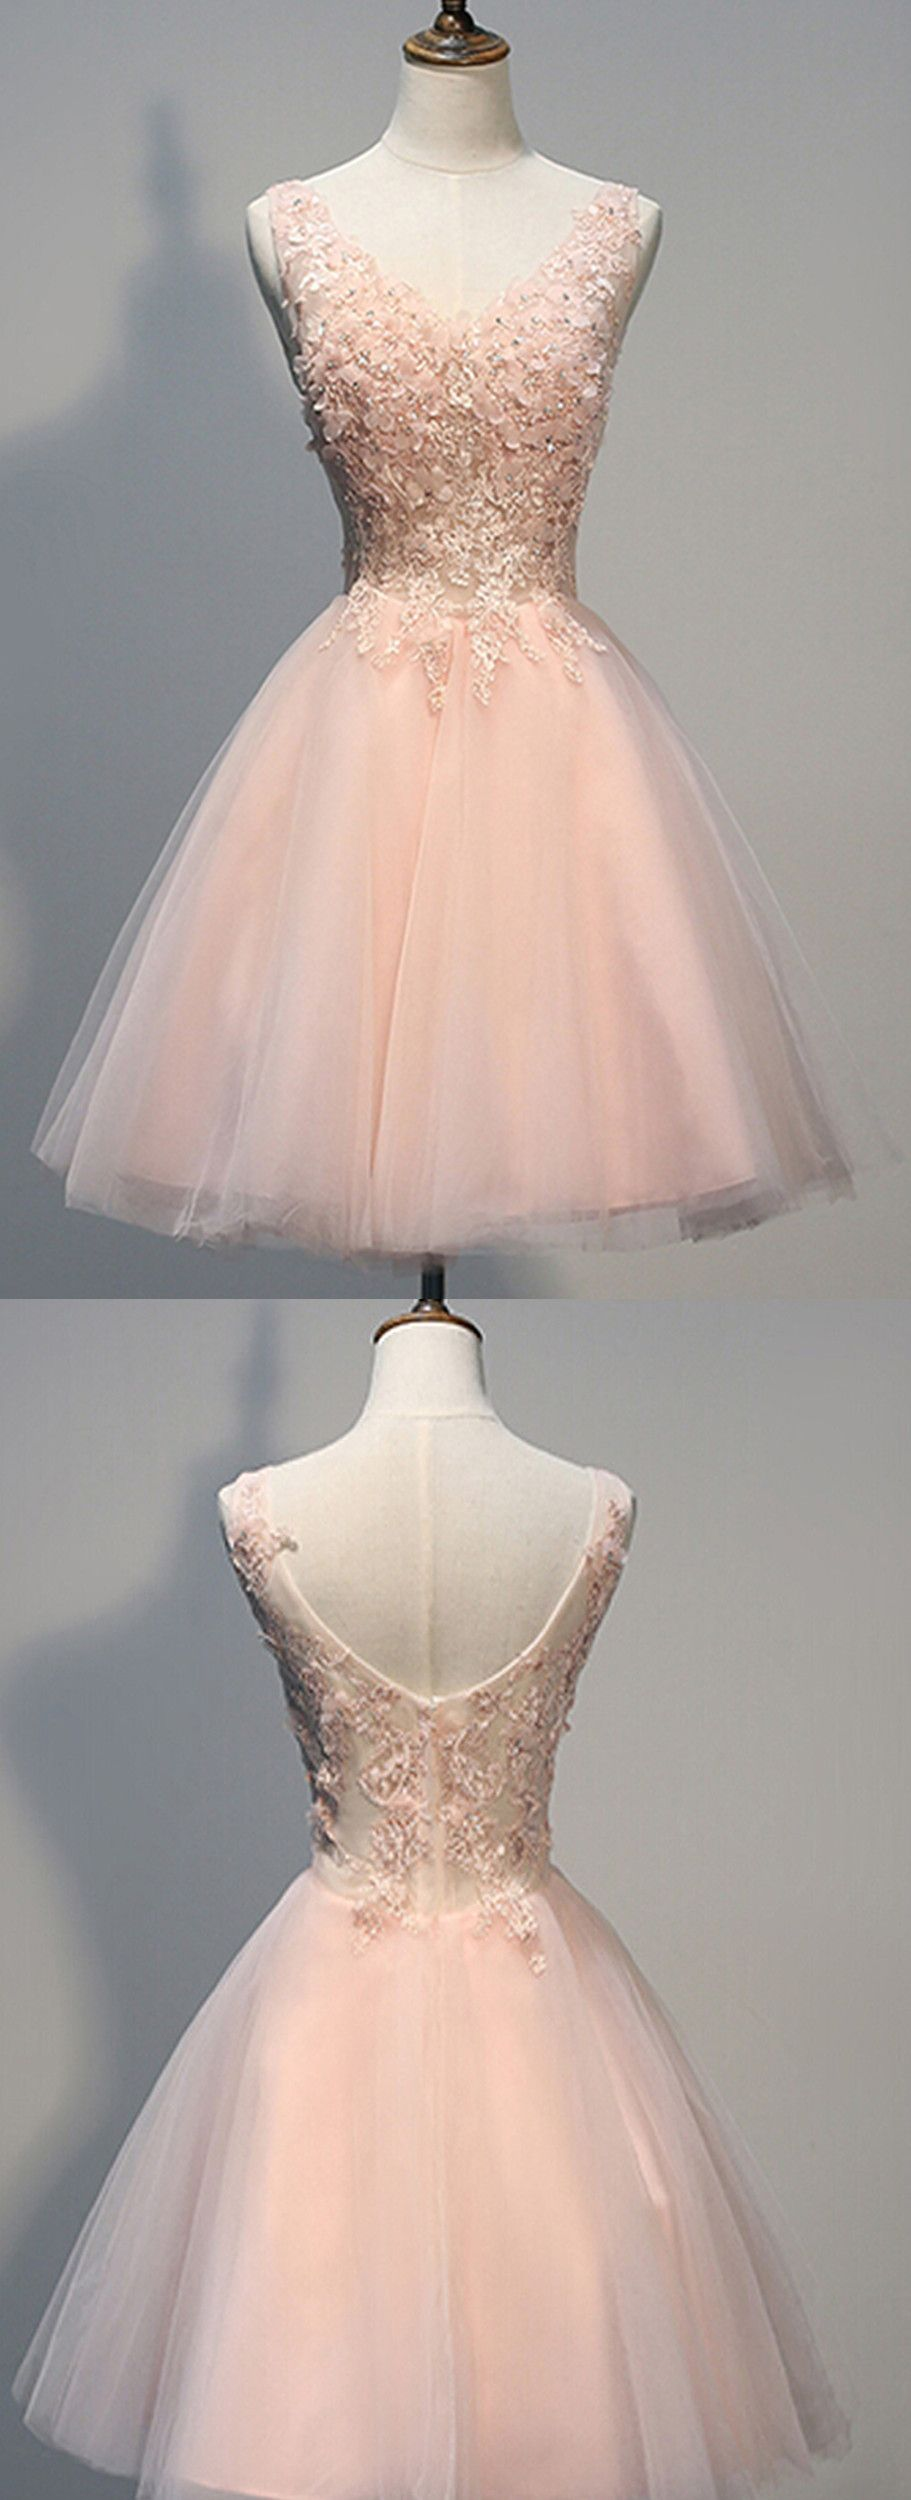 Charming homecoming dressblush pink homecoming dresseslace prom